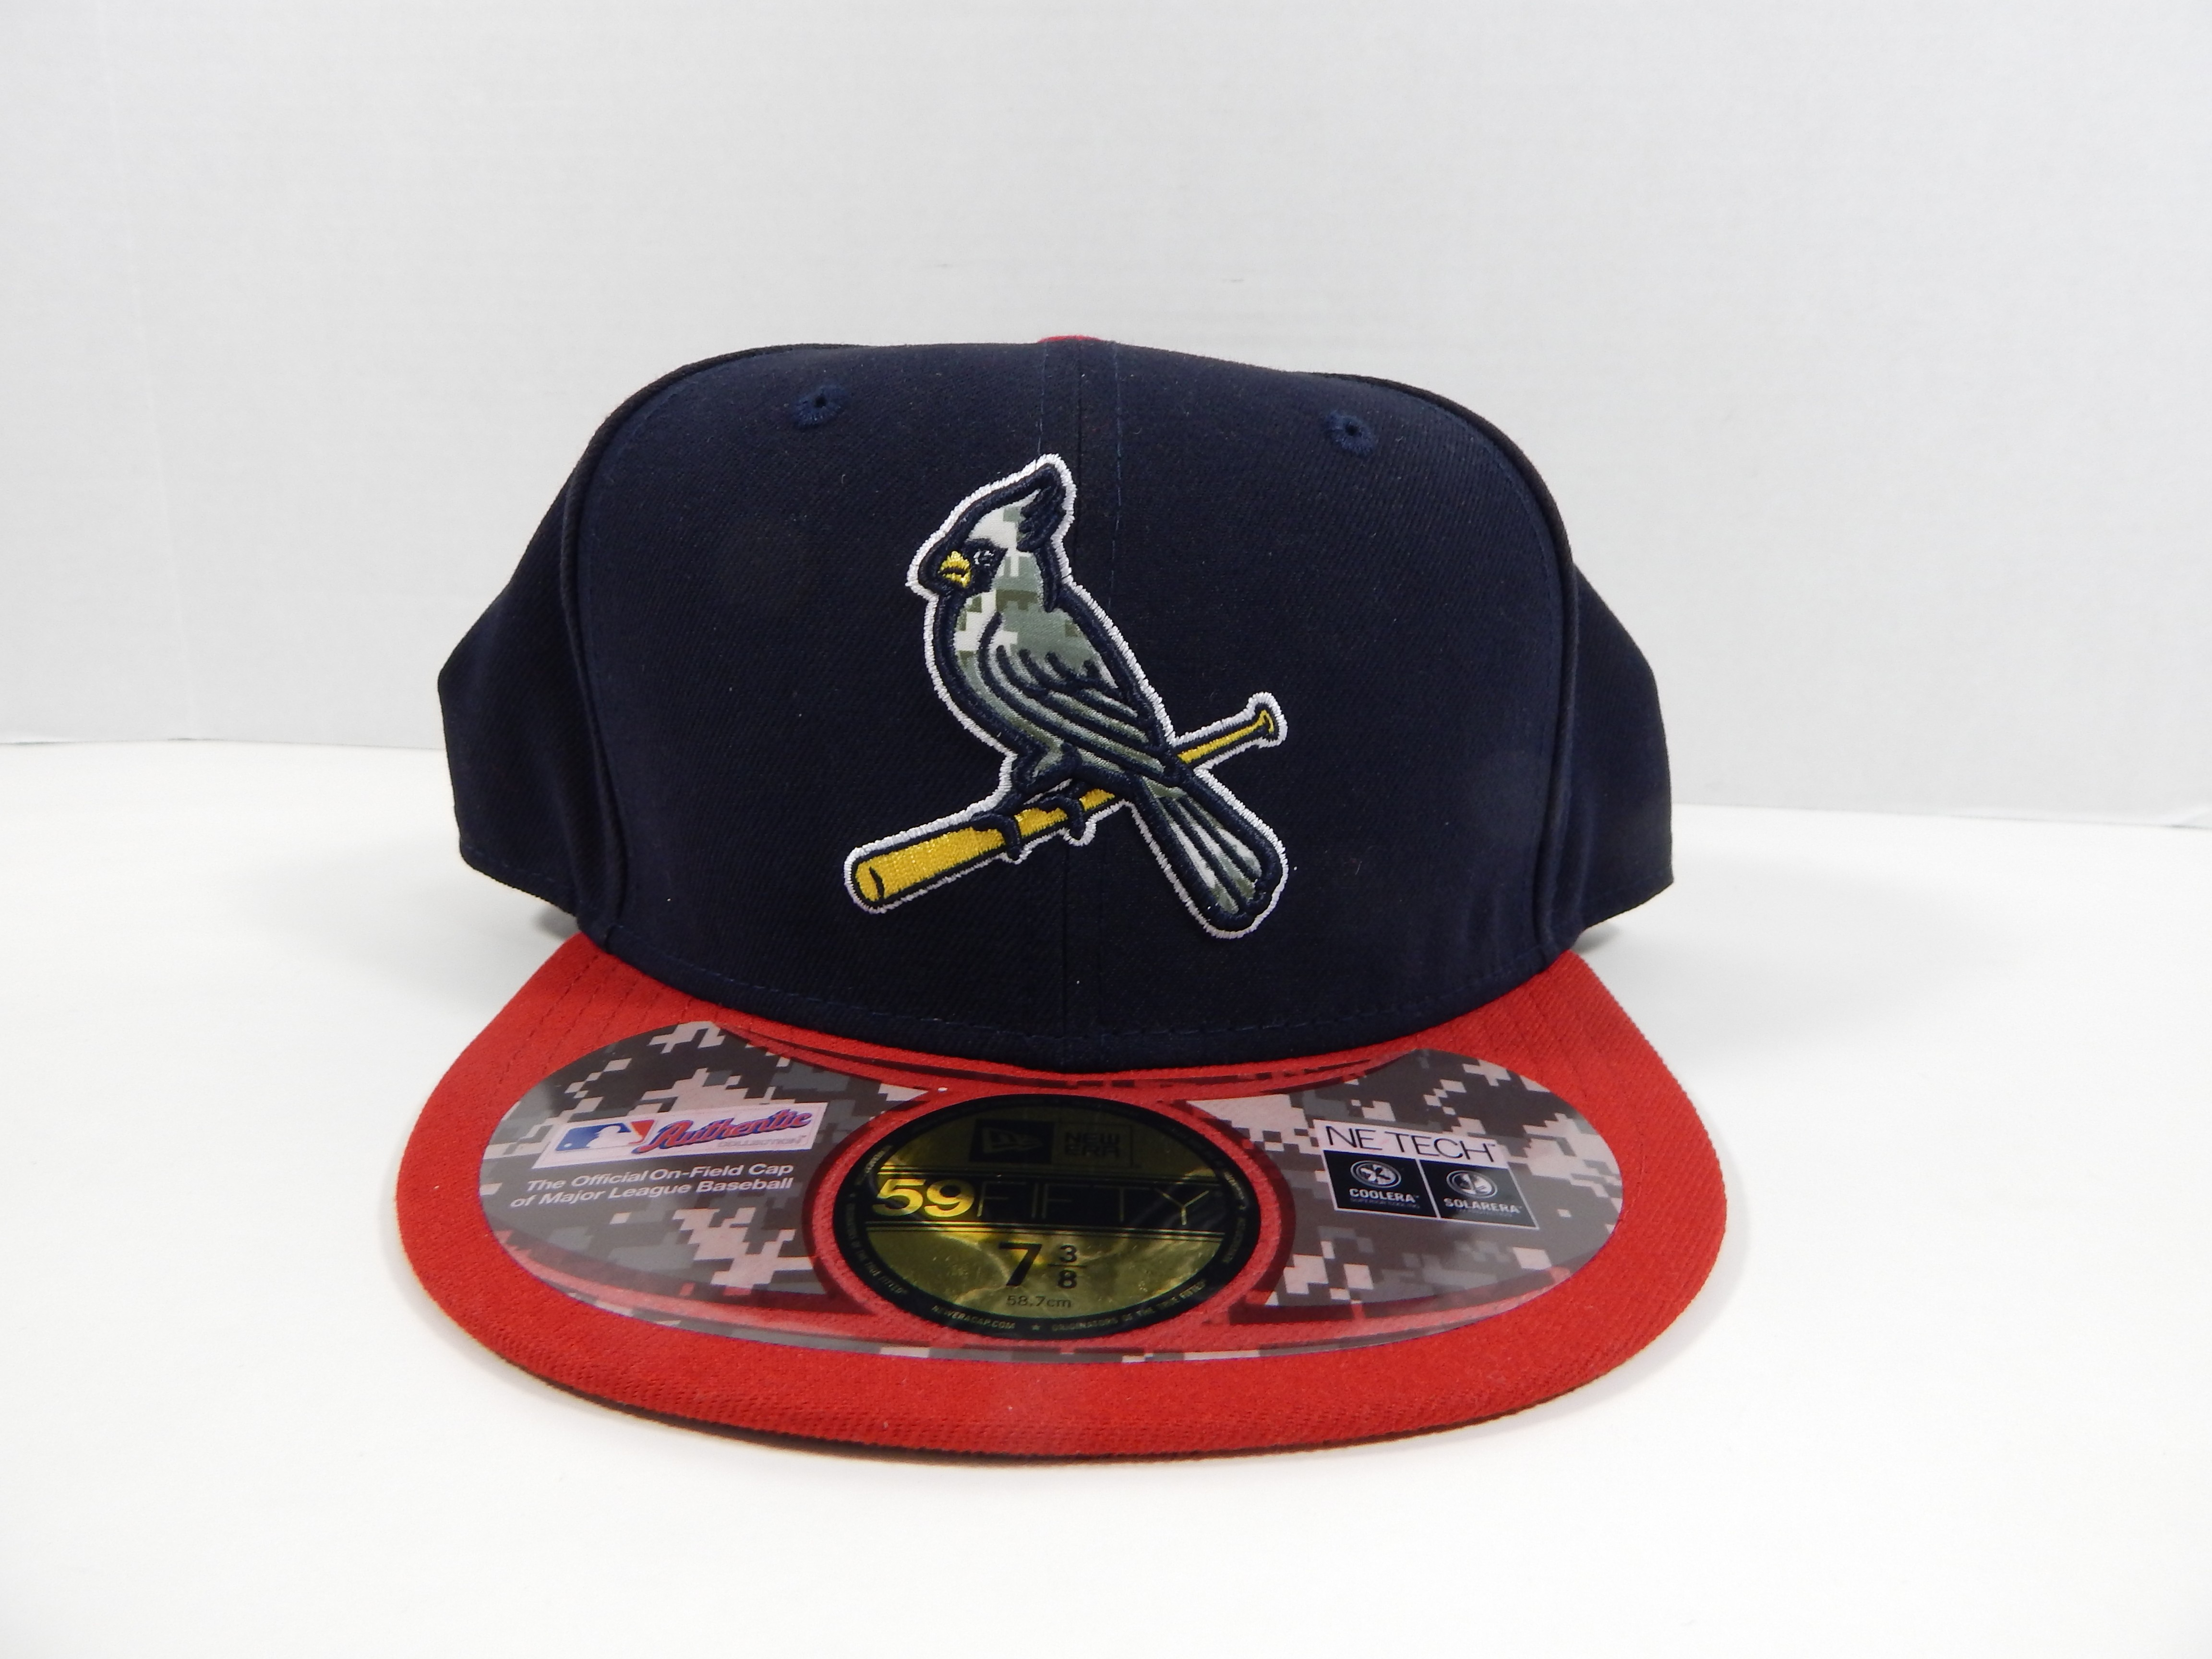 bfcd563161b St. Louis Cardinals Game Issued New Era Navy Red Digital Camo 59FIFTY  Fitted Hat